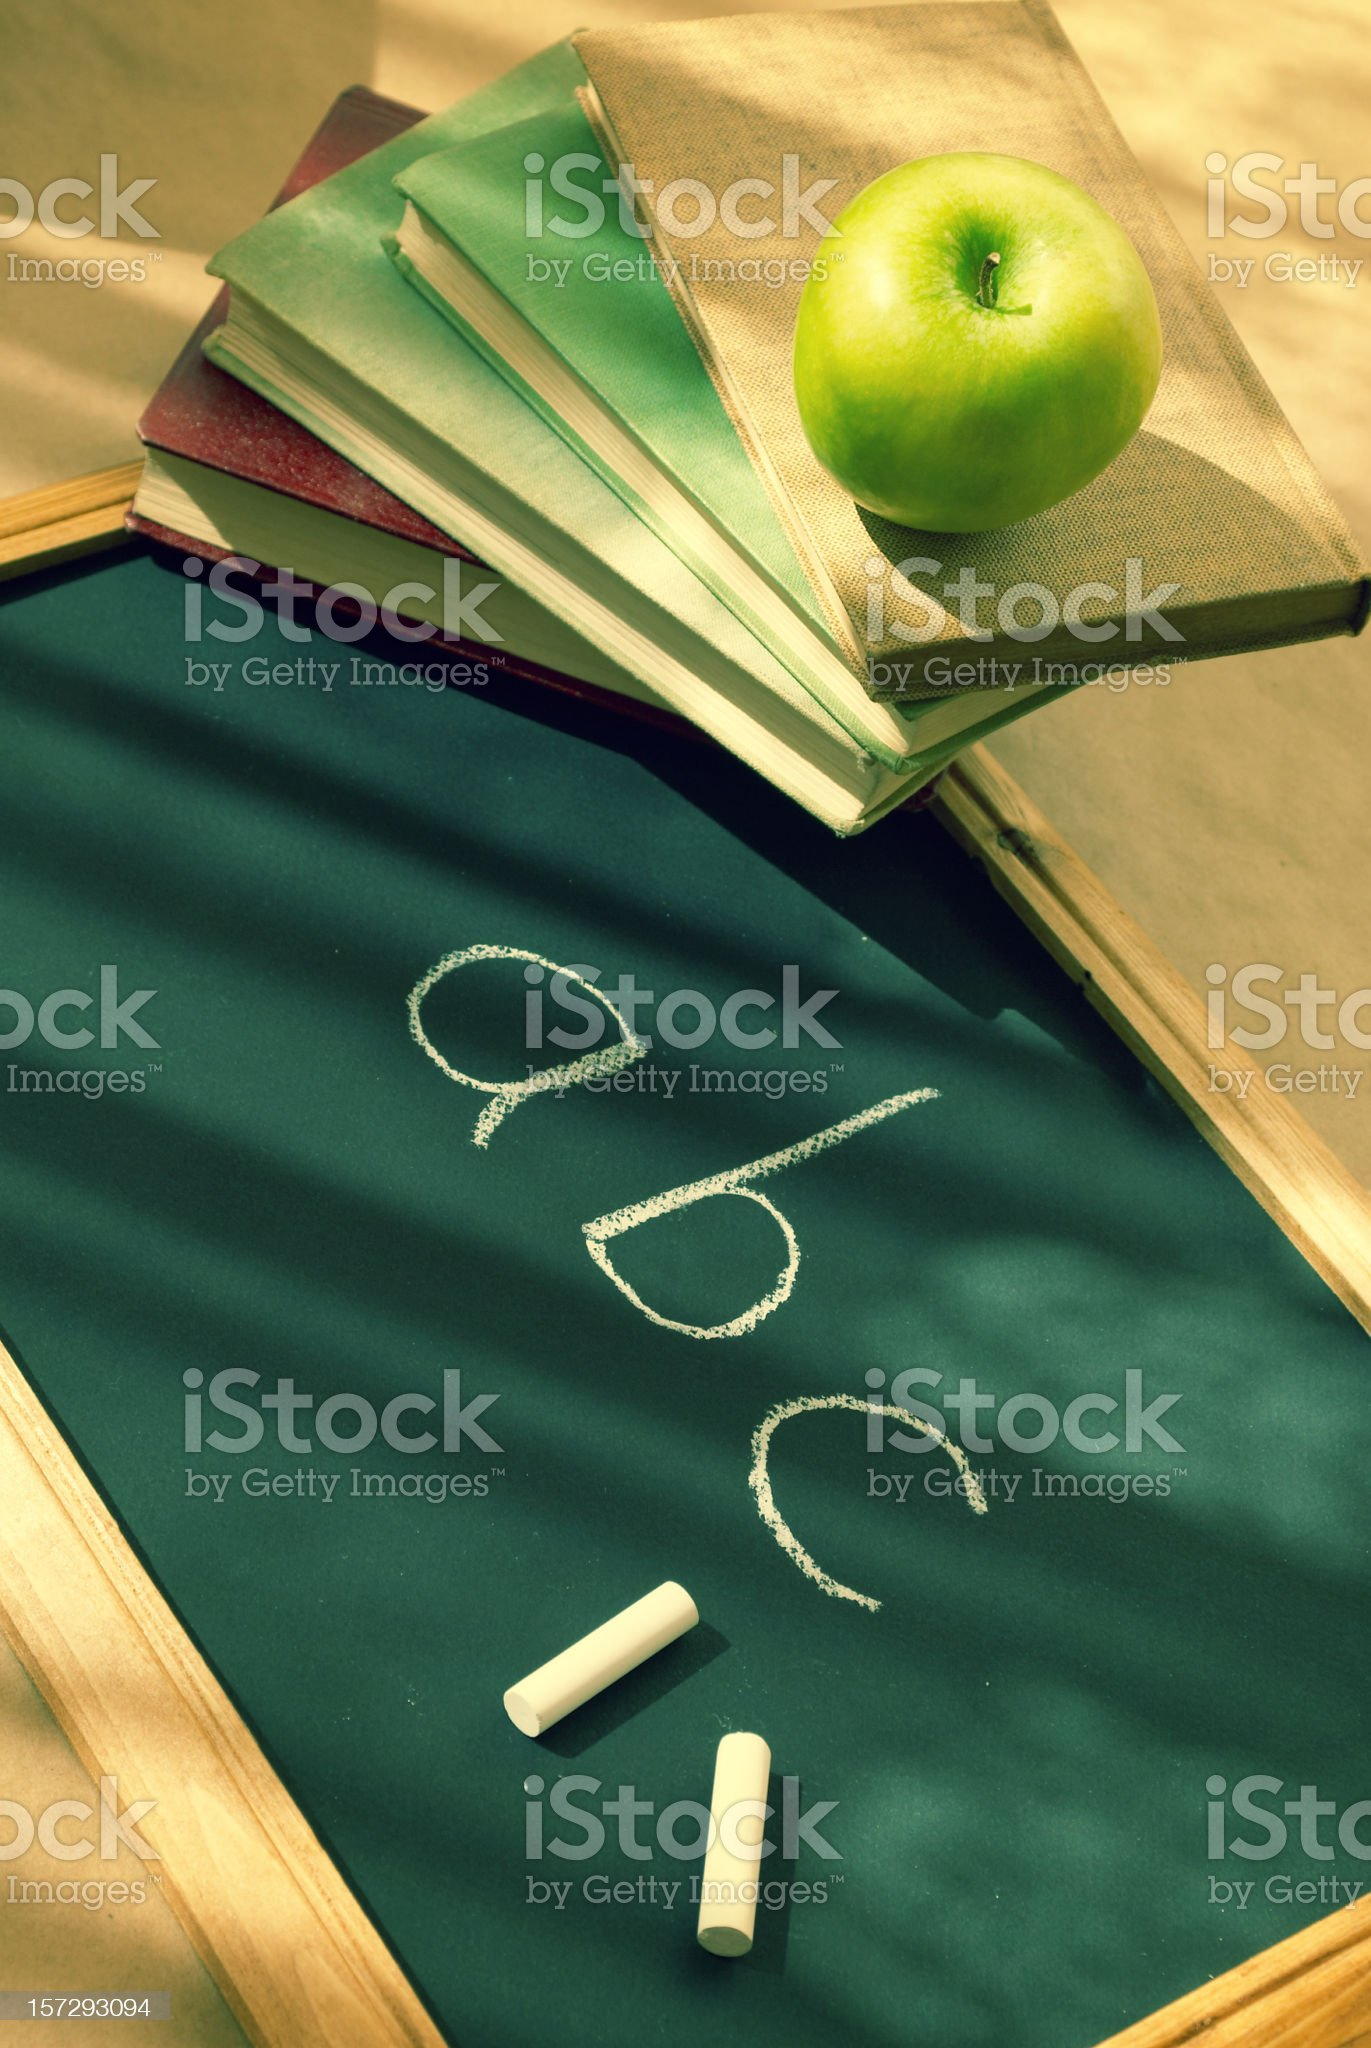 Educational Concept royalty-free stock photo